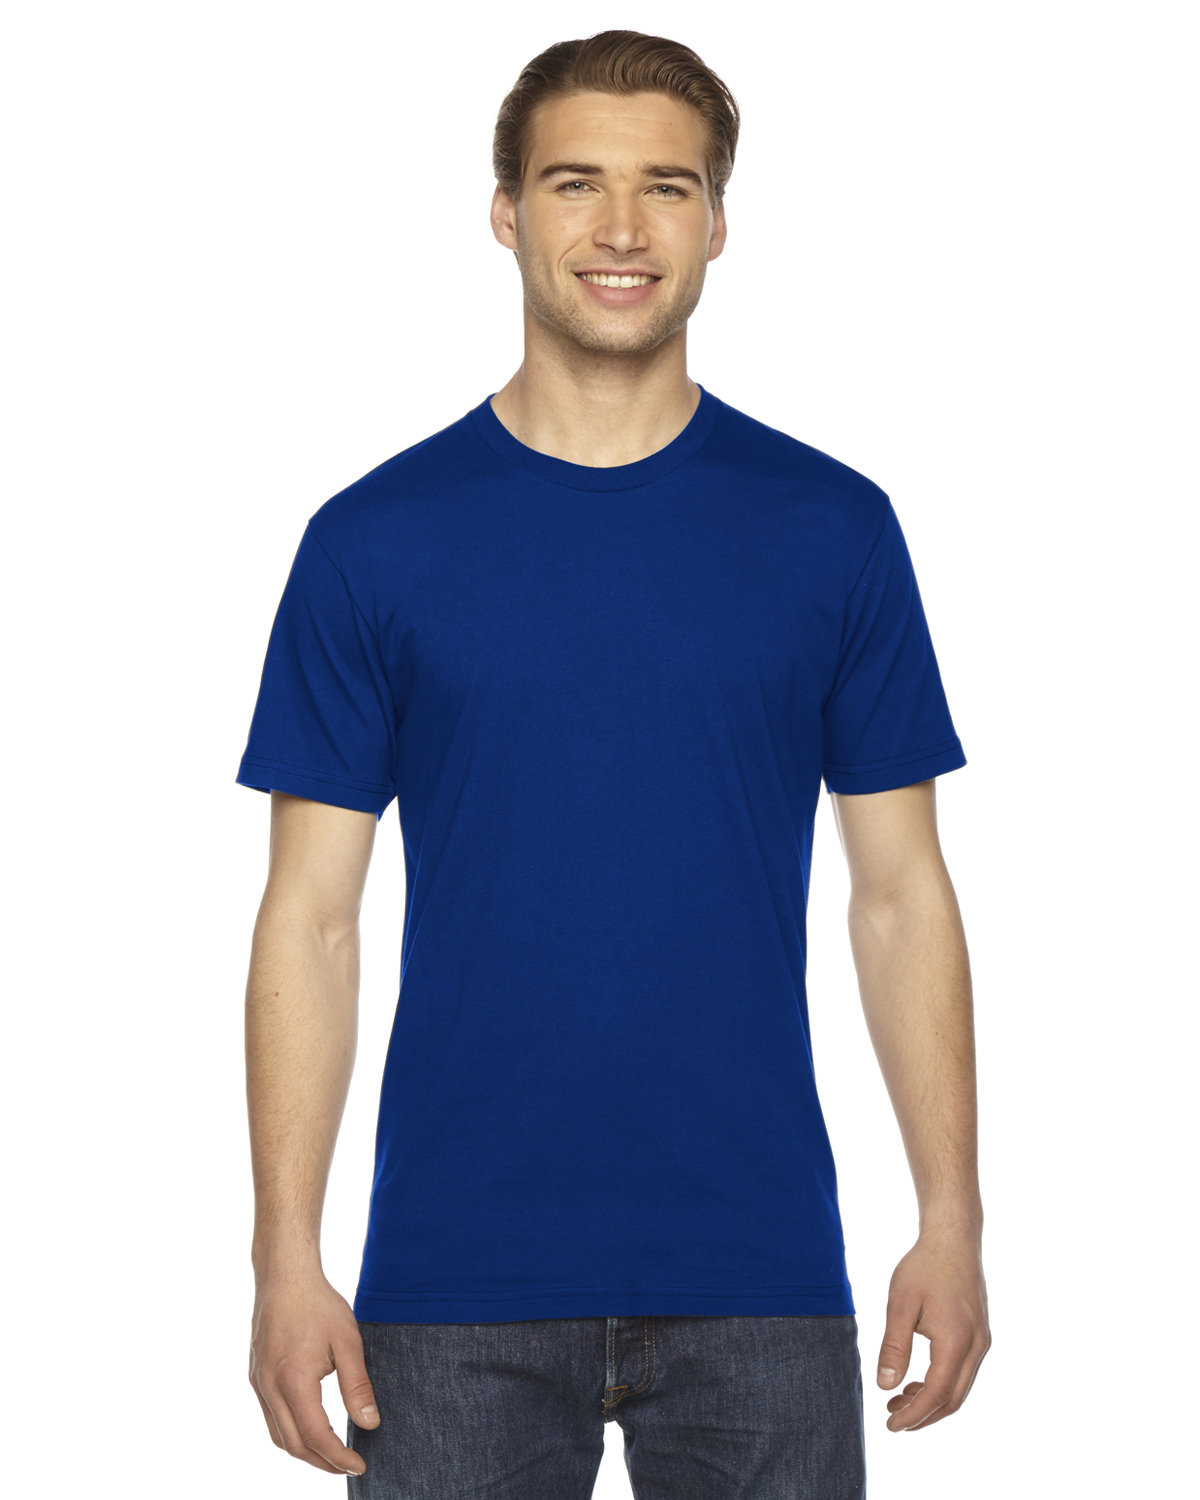 American Apparel Unisex Fine Jersey USA Made T-Shirt LAPIS